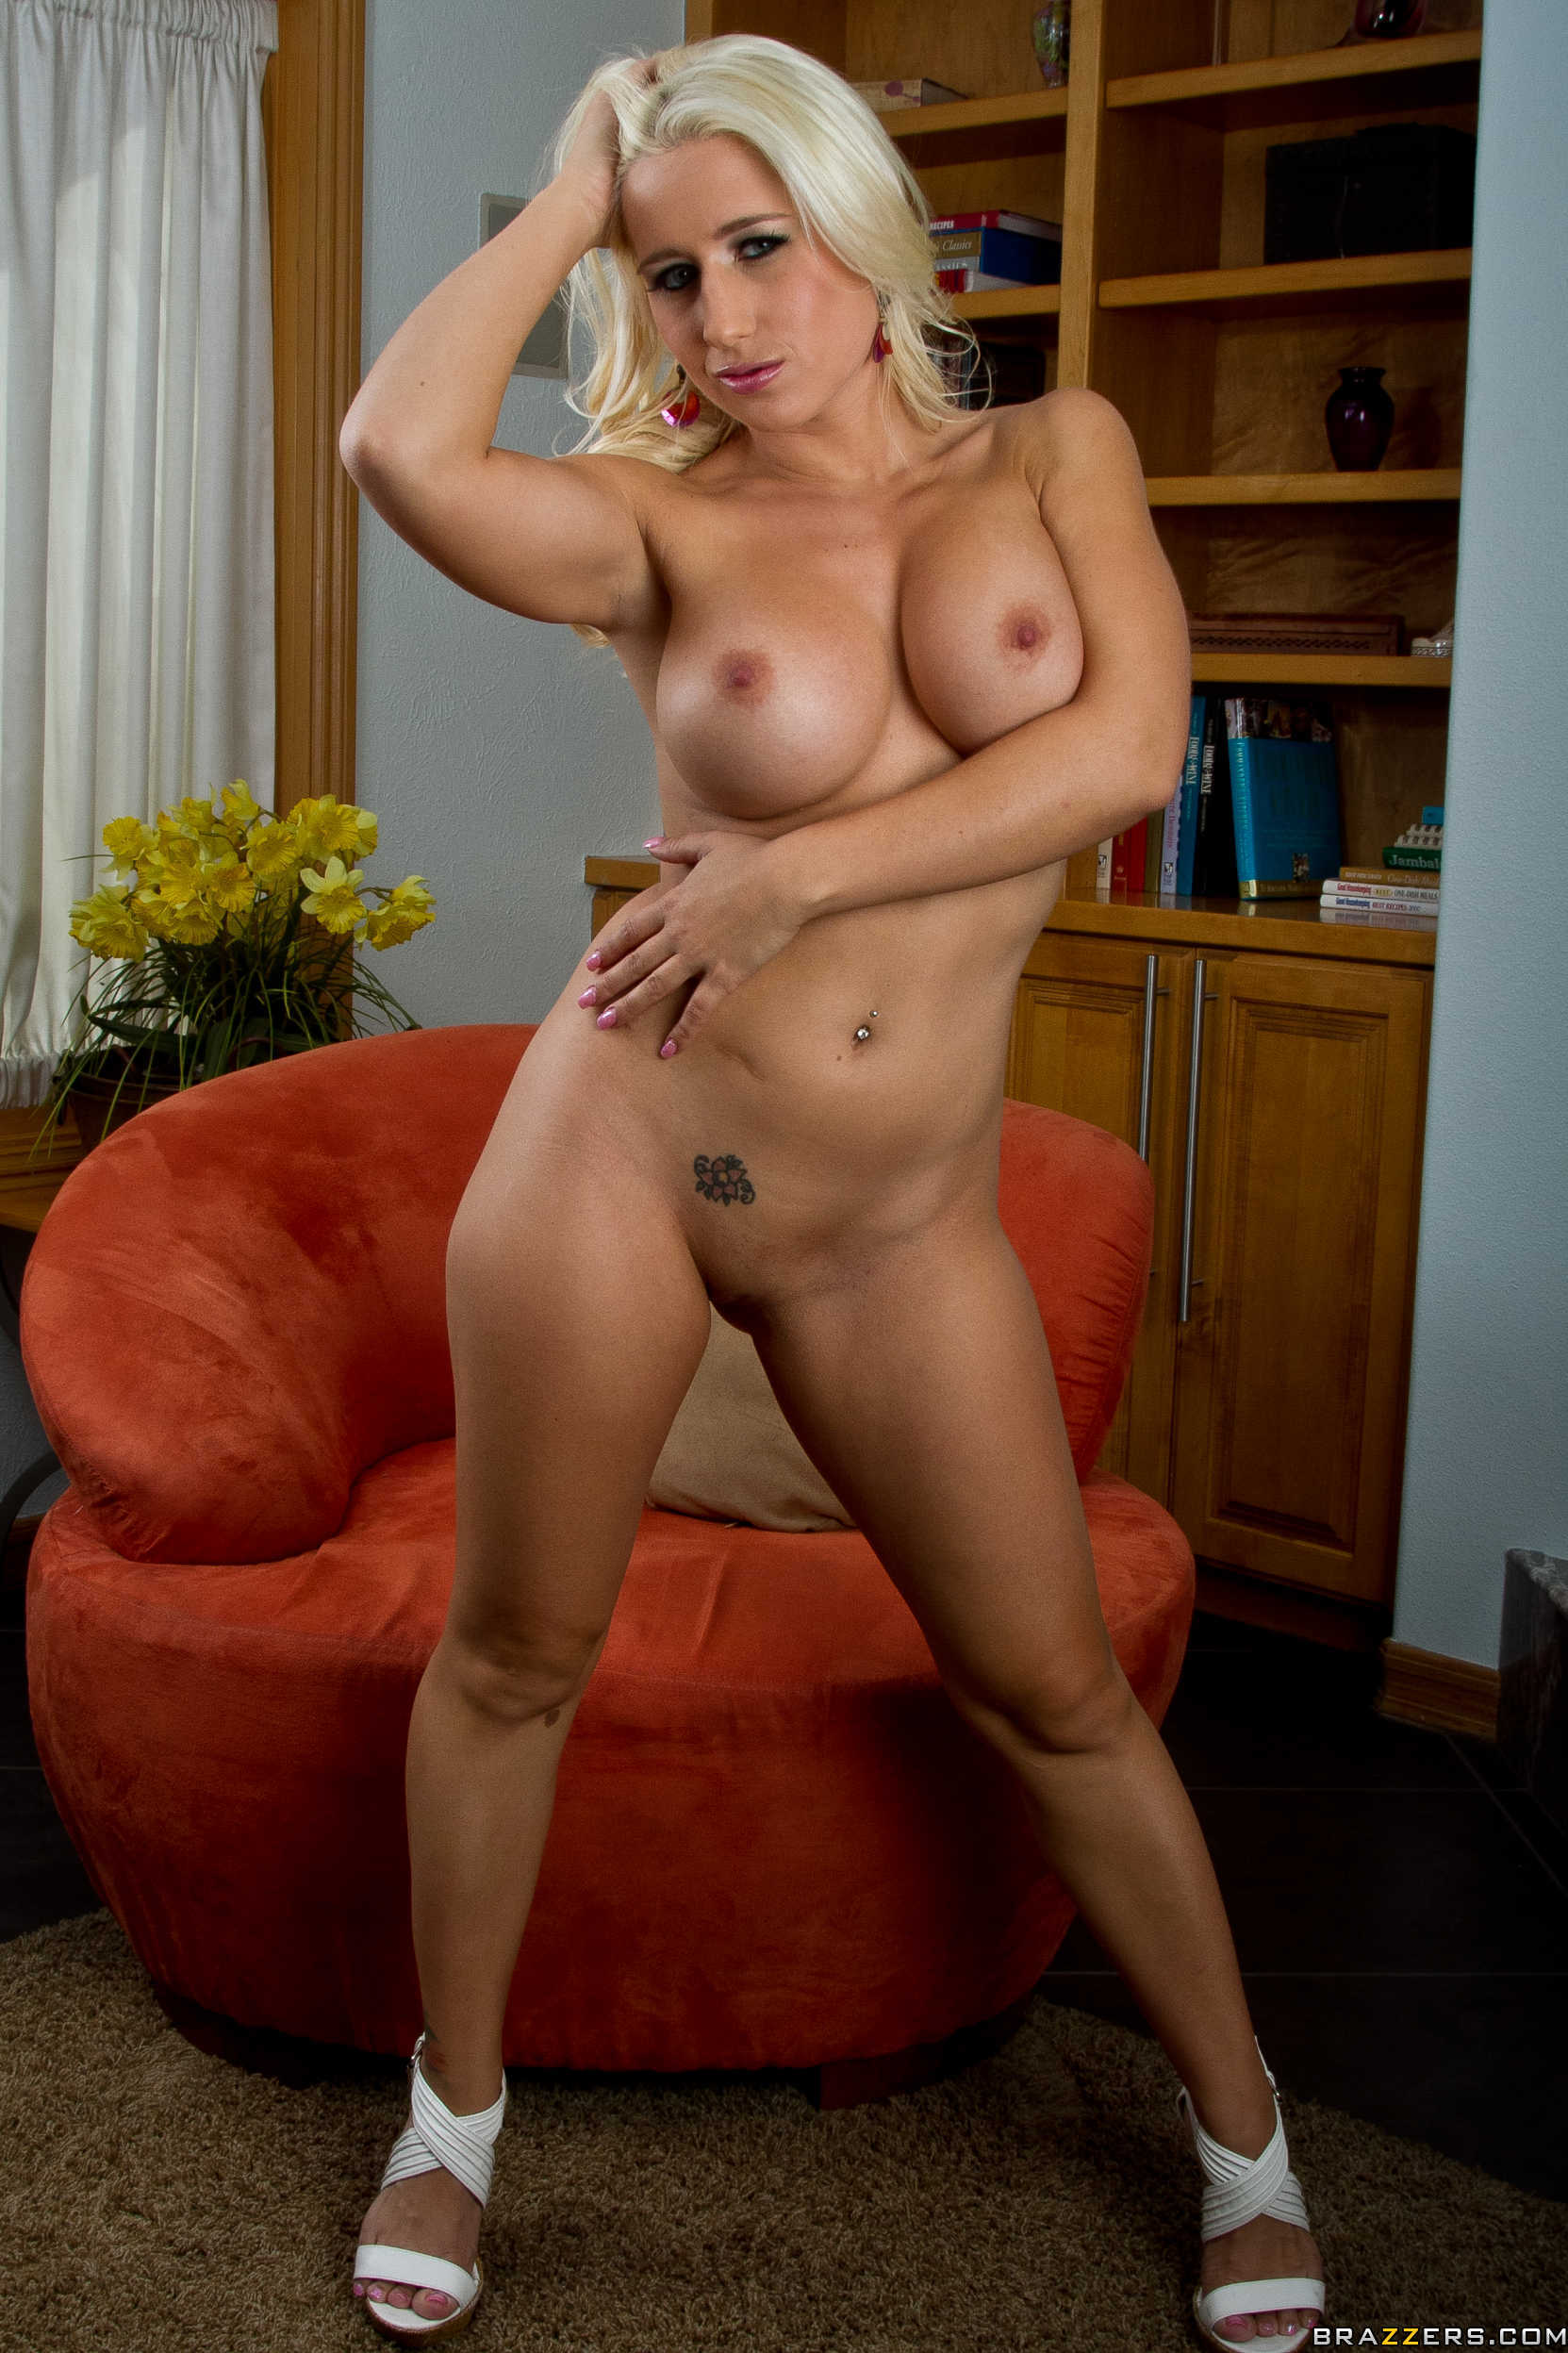 Nude hairy vintage penthouse centerfolds